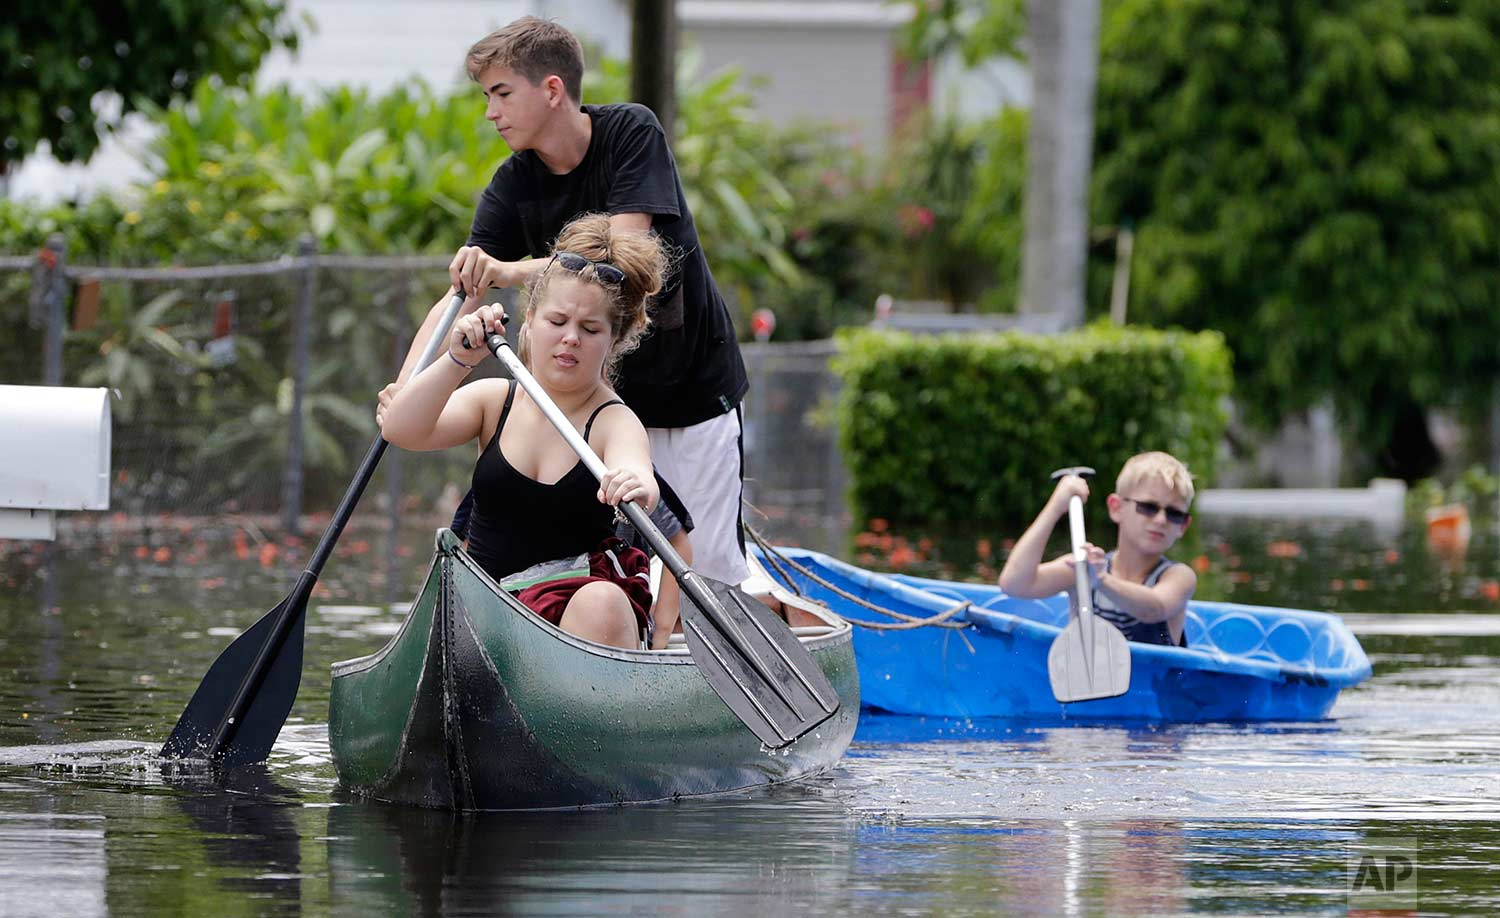 """Isabella and Timothy, who did not want their last names used, navigate flooded streets following heavy rains, Wednesday, June 7, 2017, in Davie, Fla. Several South Florida cities set rainfall records as heavy rain continues to fall, bringing the potential for further flooding. Wallace put up the """"Slow No Wake"""" sign to prevent fast moving vehicles from flooding her trailer. (AP Photo/Lynne Sladky)"""